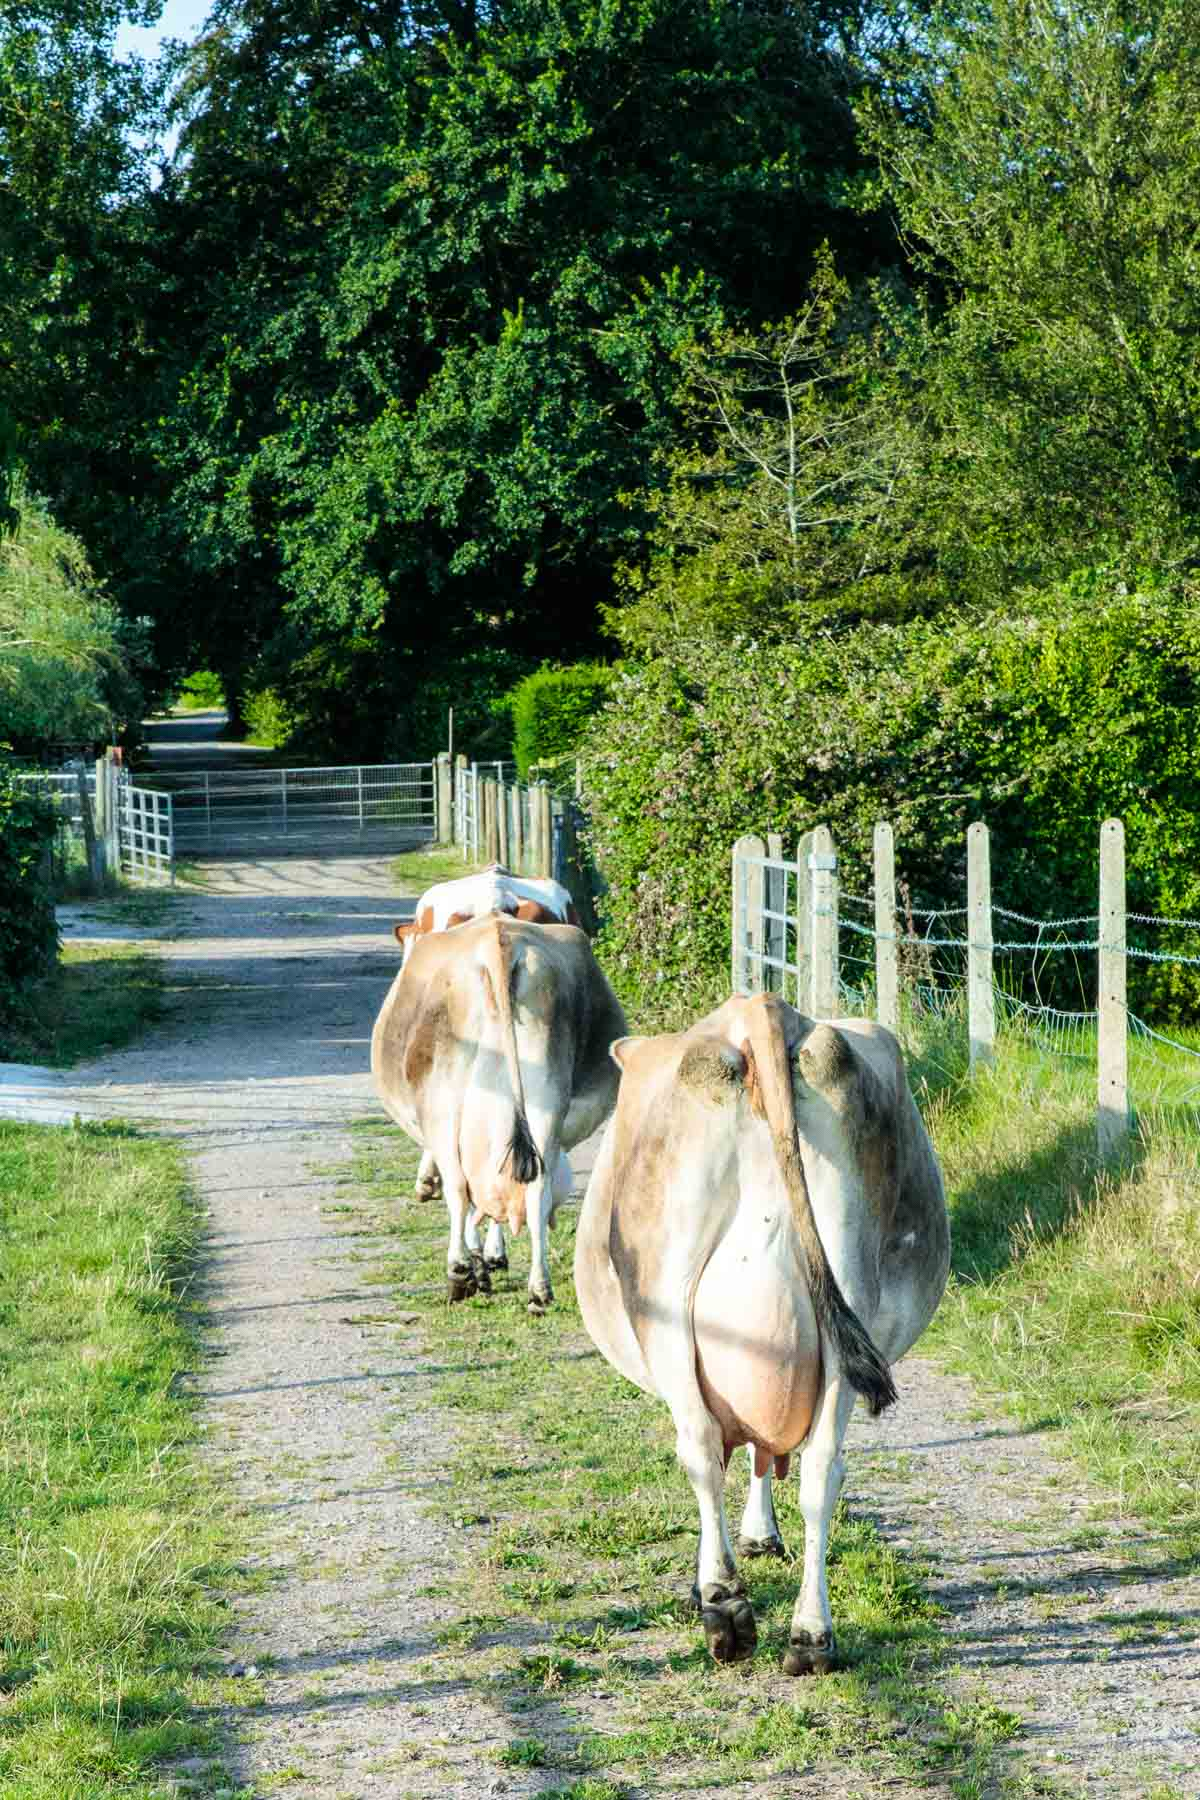 Photo of Guernsey cows heading to the milk house for the day's milking.